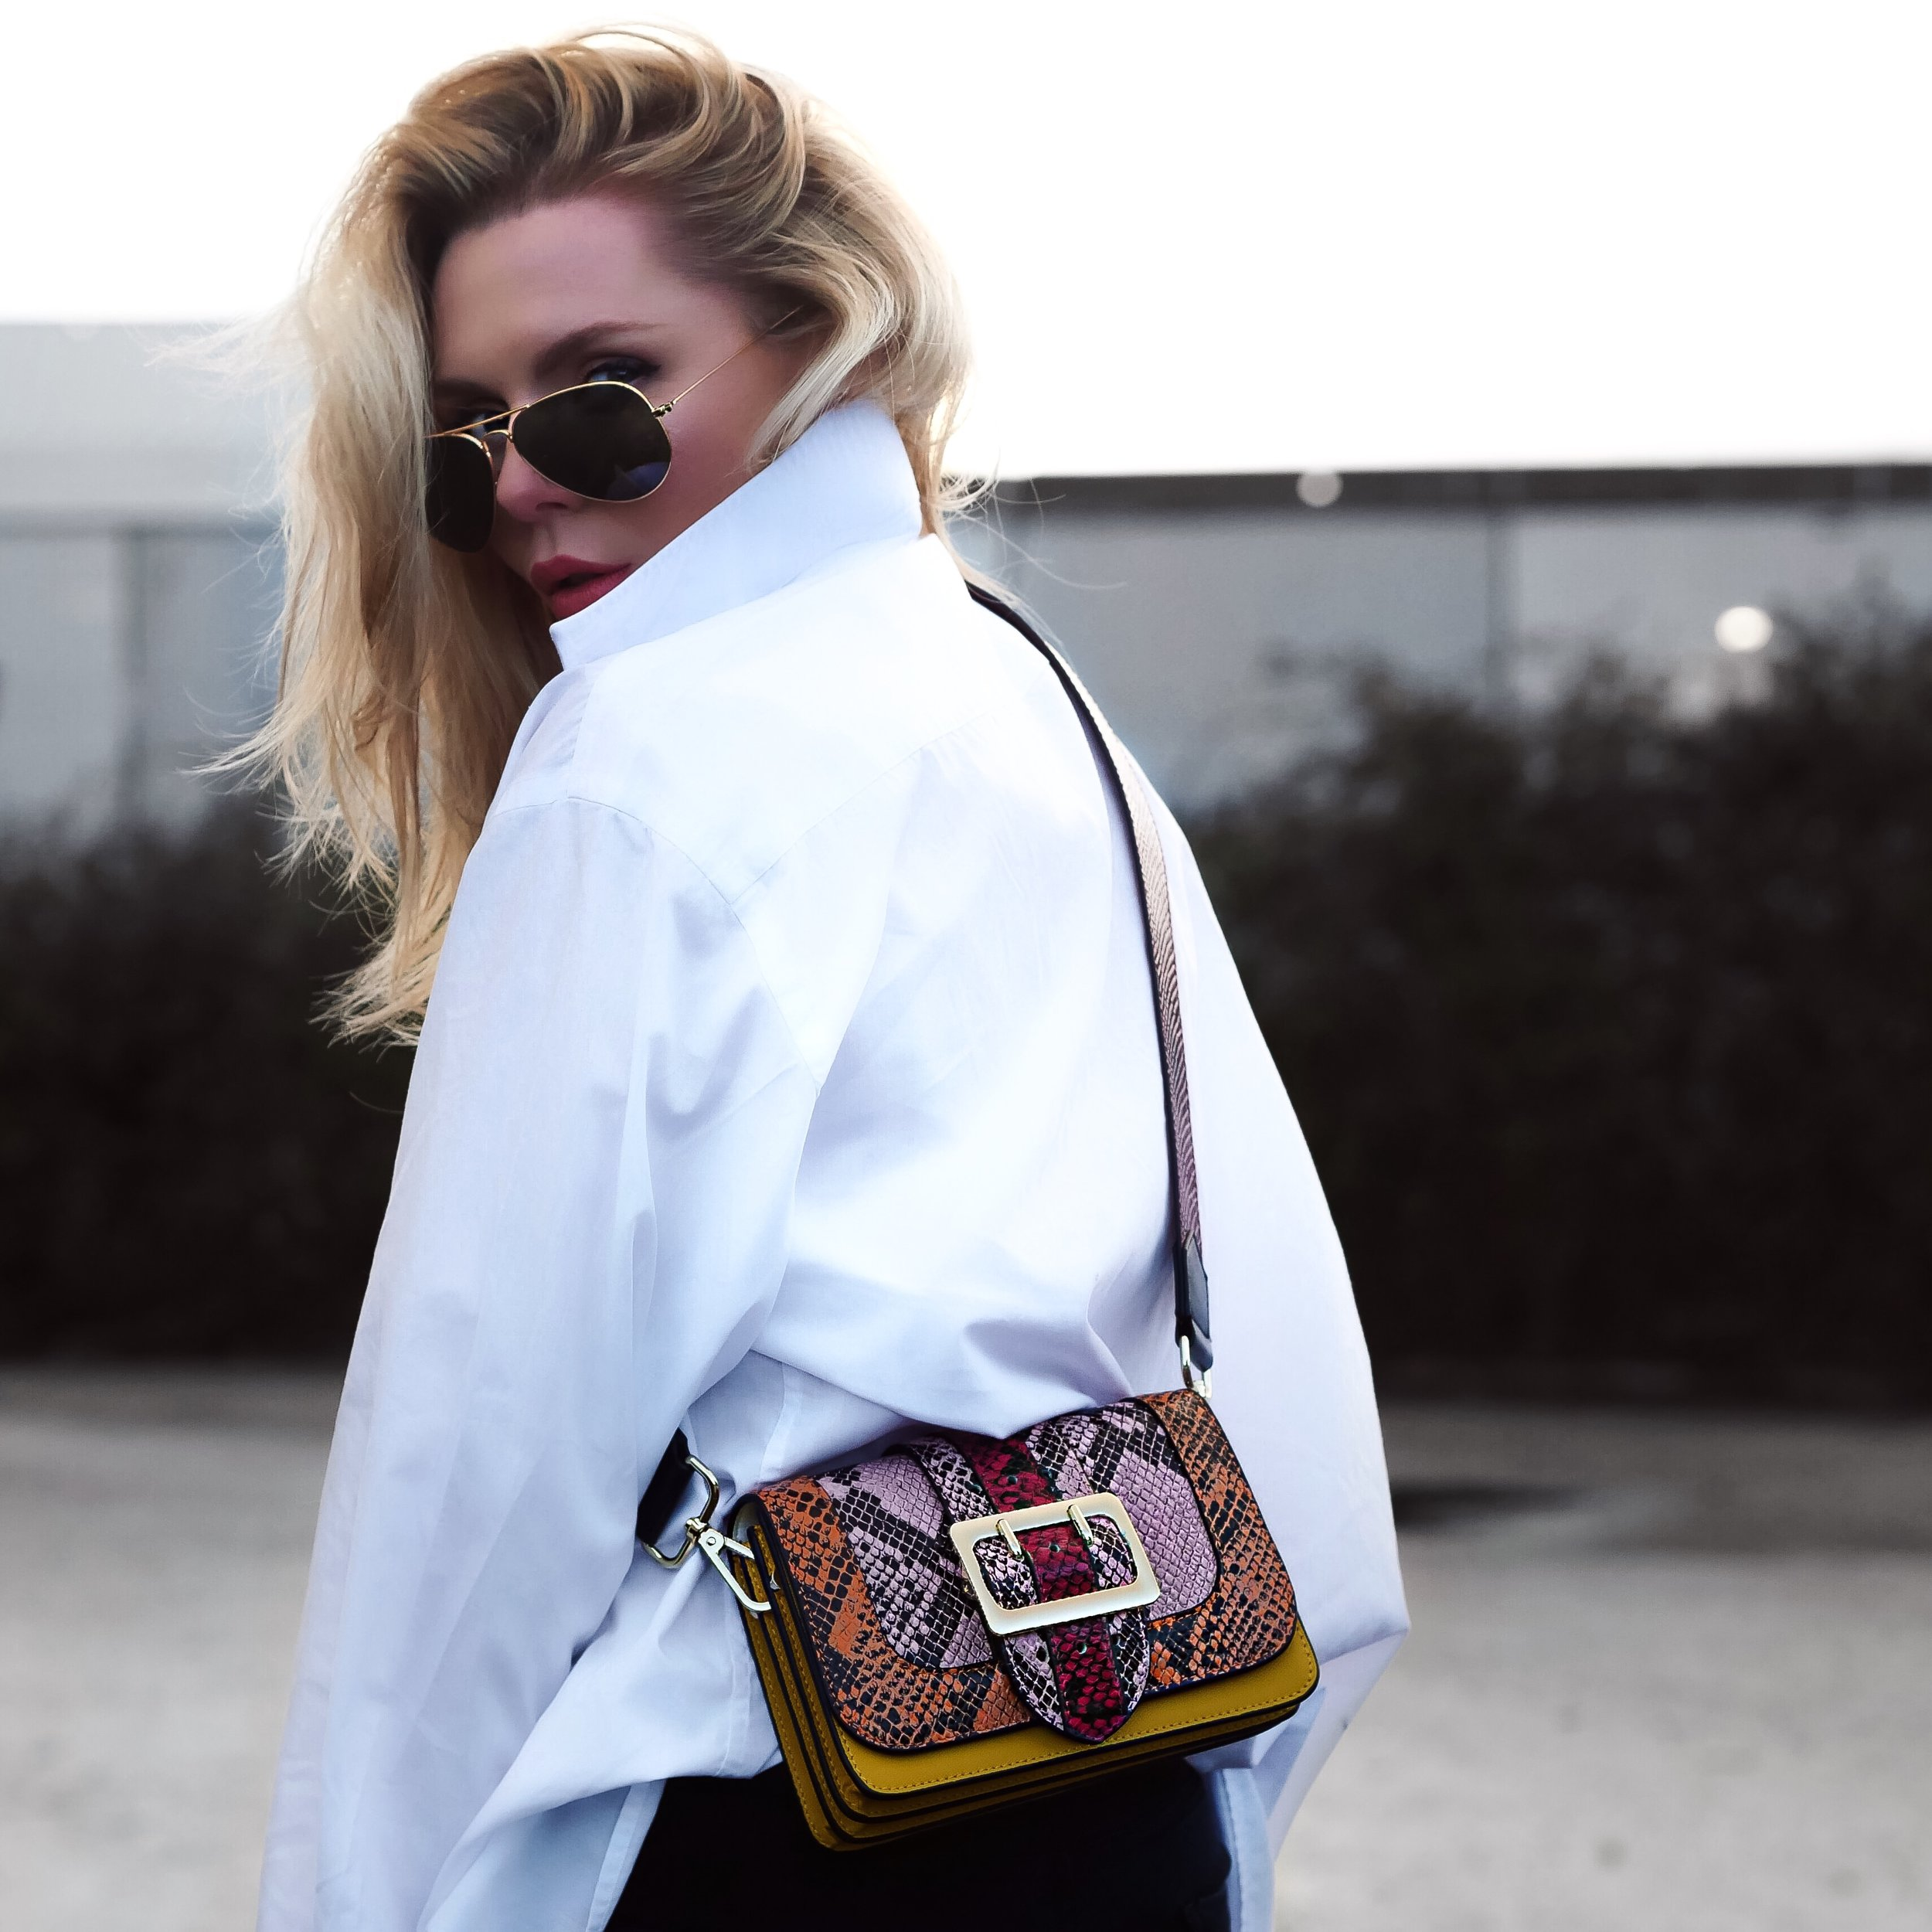 haul, affordable fashion, strretstyle, inspiration, what to wear, fashion, lookbook, style, fashion blogger, laura blair, youtuber, london fashion girl, snakeskin bag